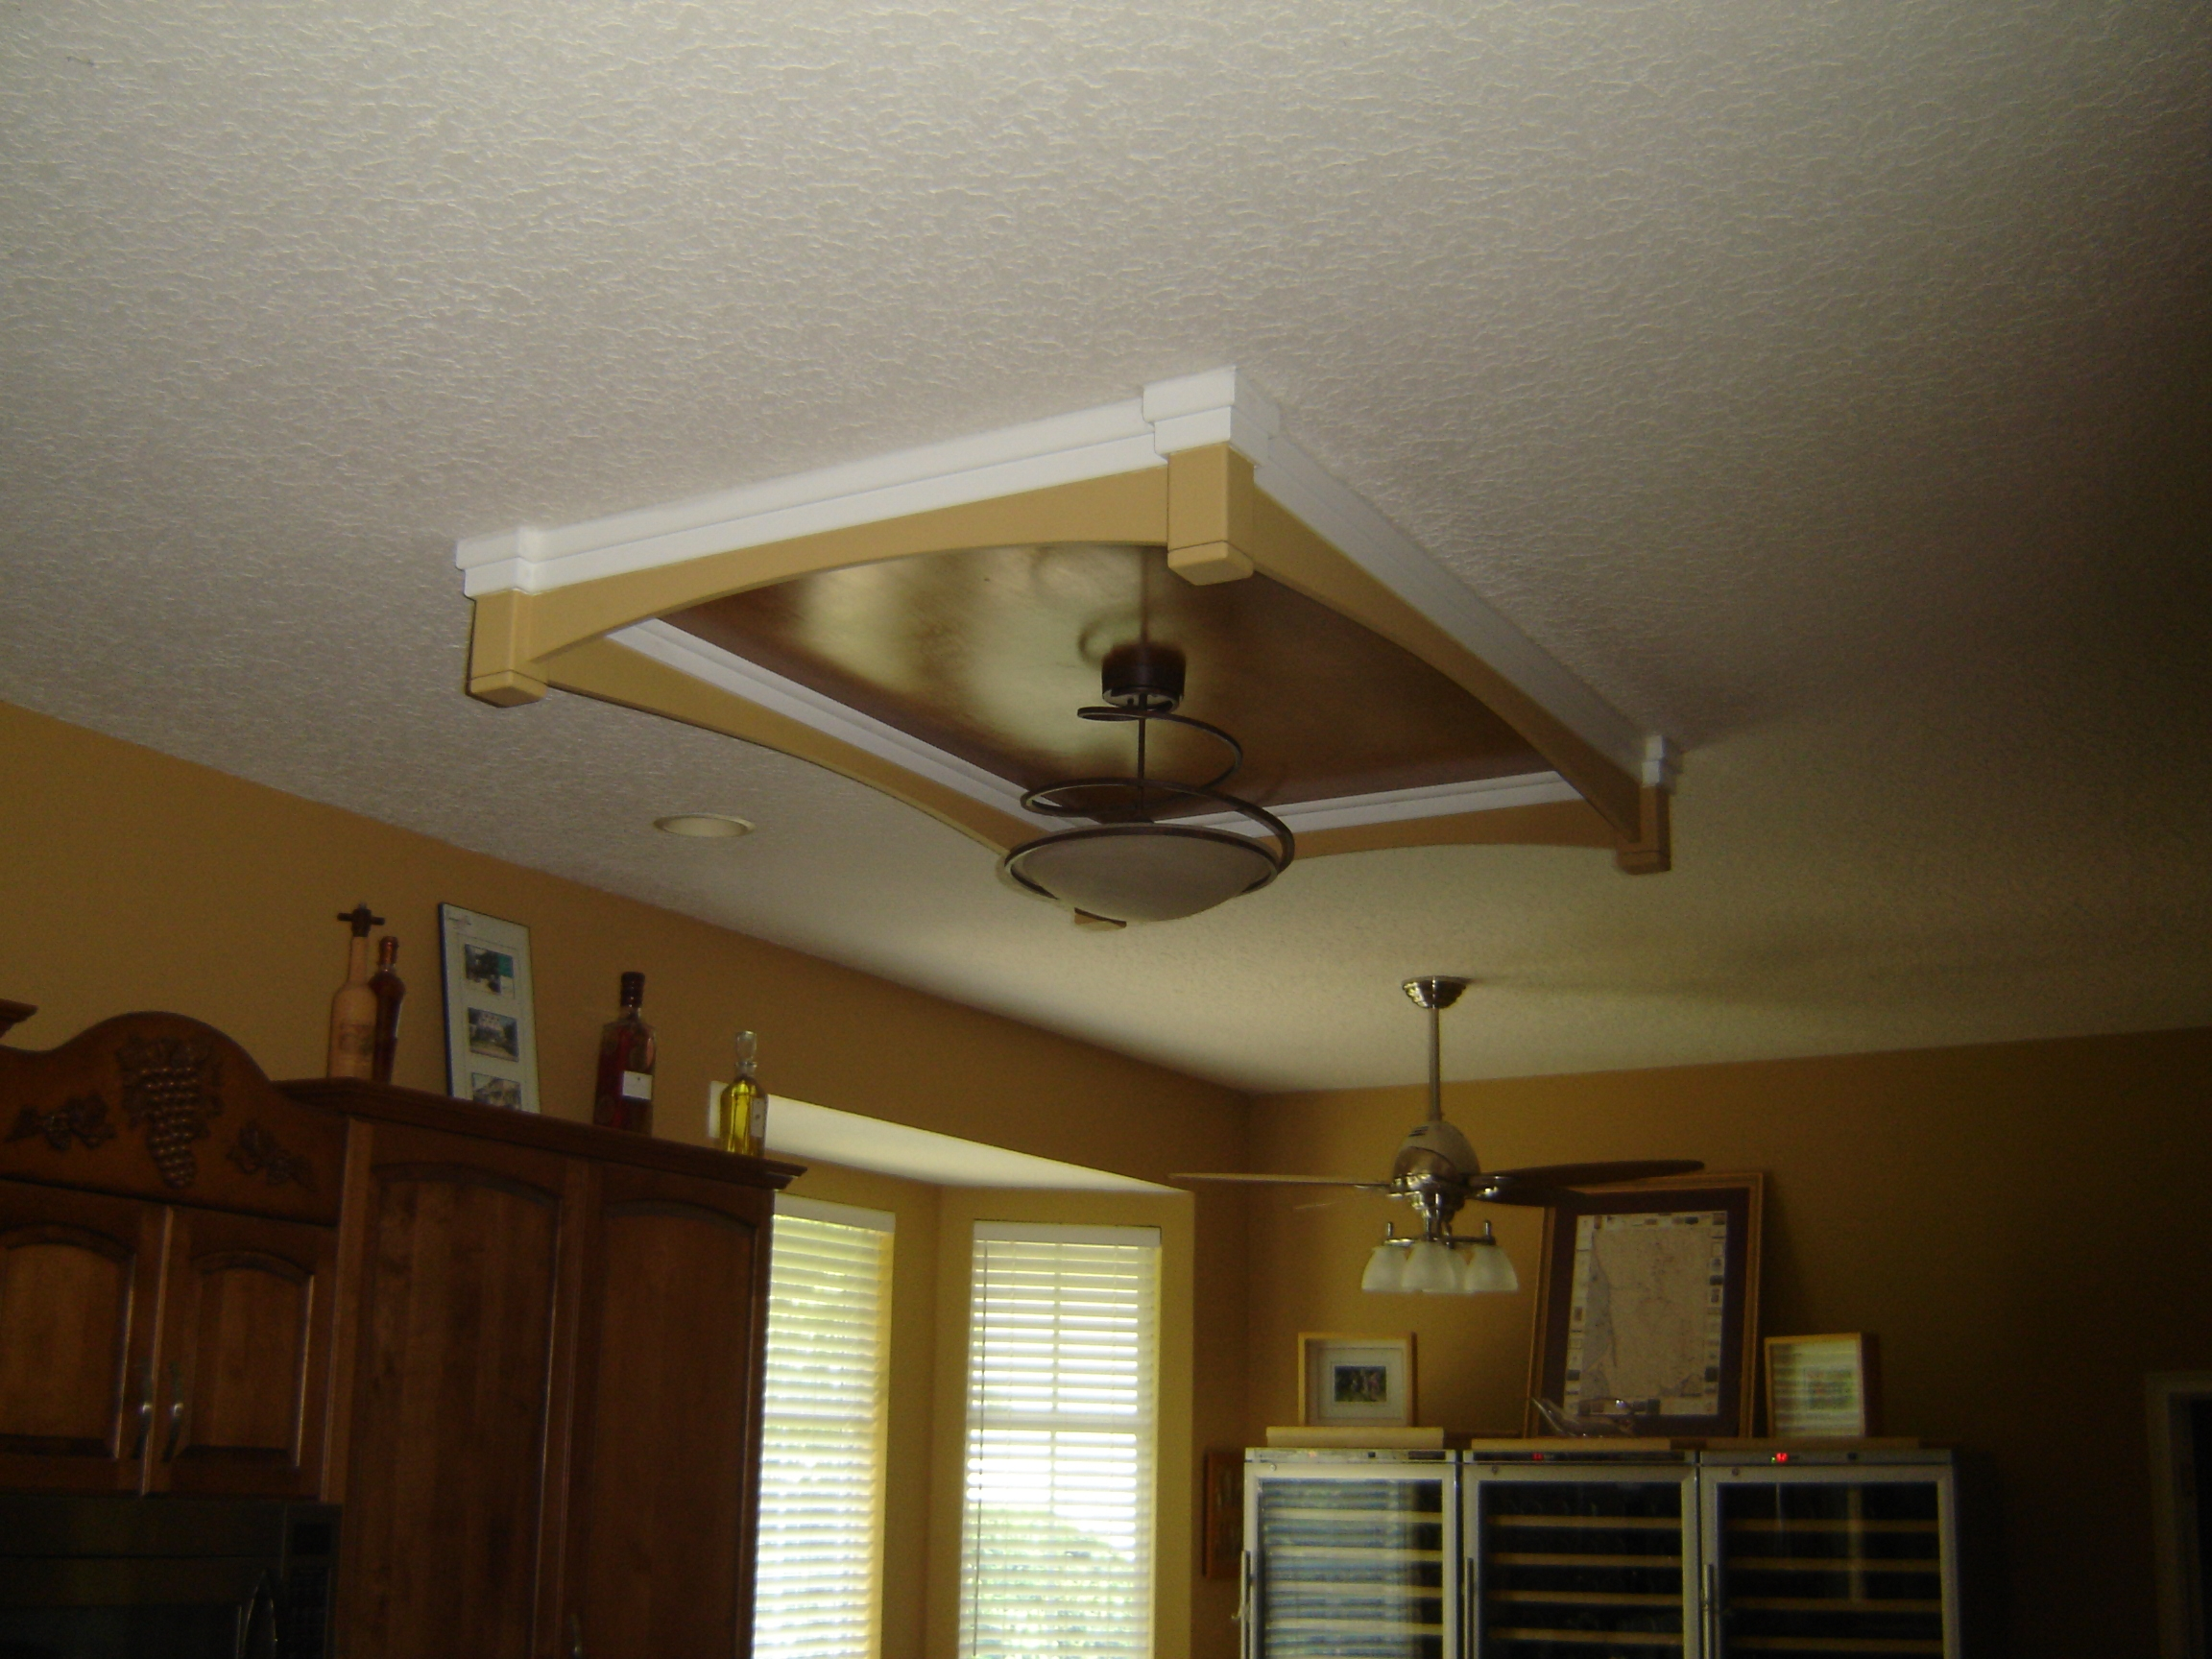 Flush Mount Kitchen Lighting Led Flush Mount Kitchen Lighting Small Ceiling Fan With Light For